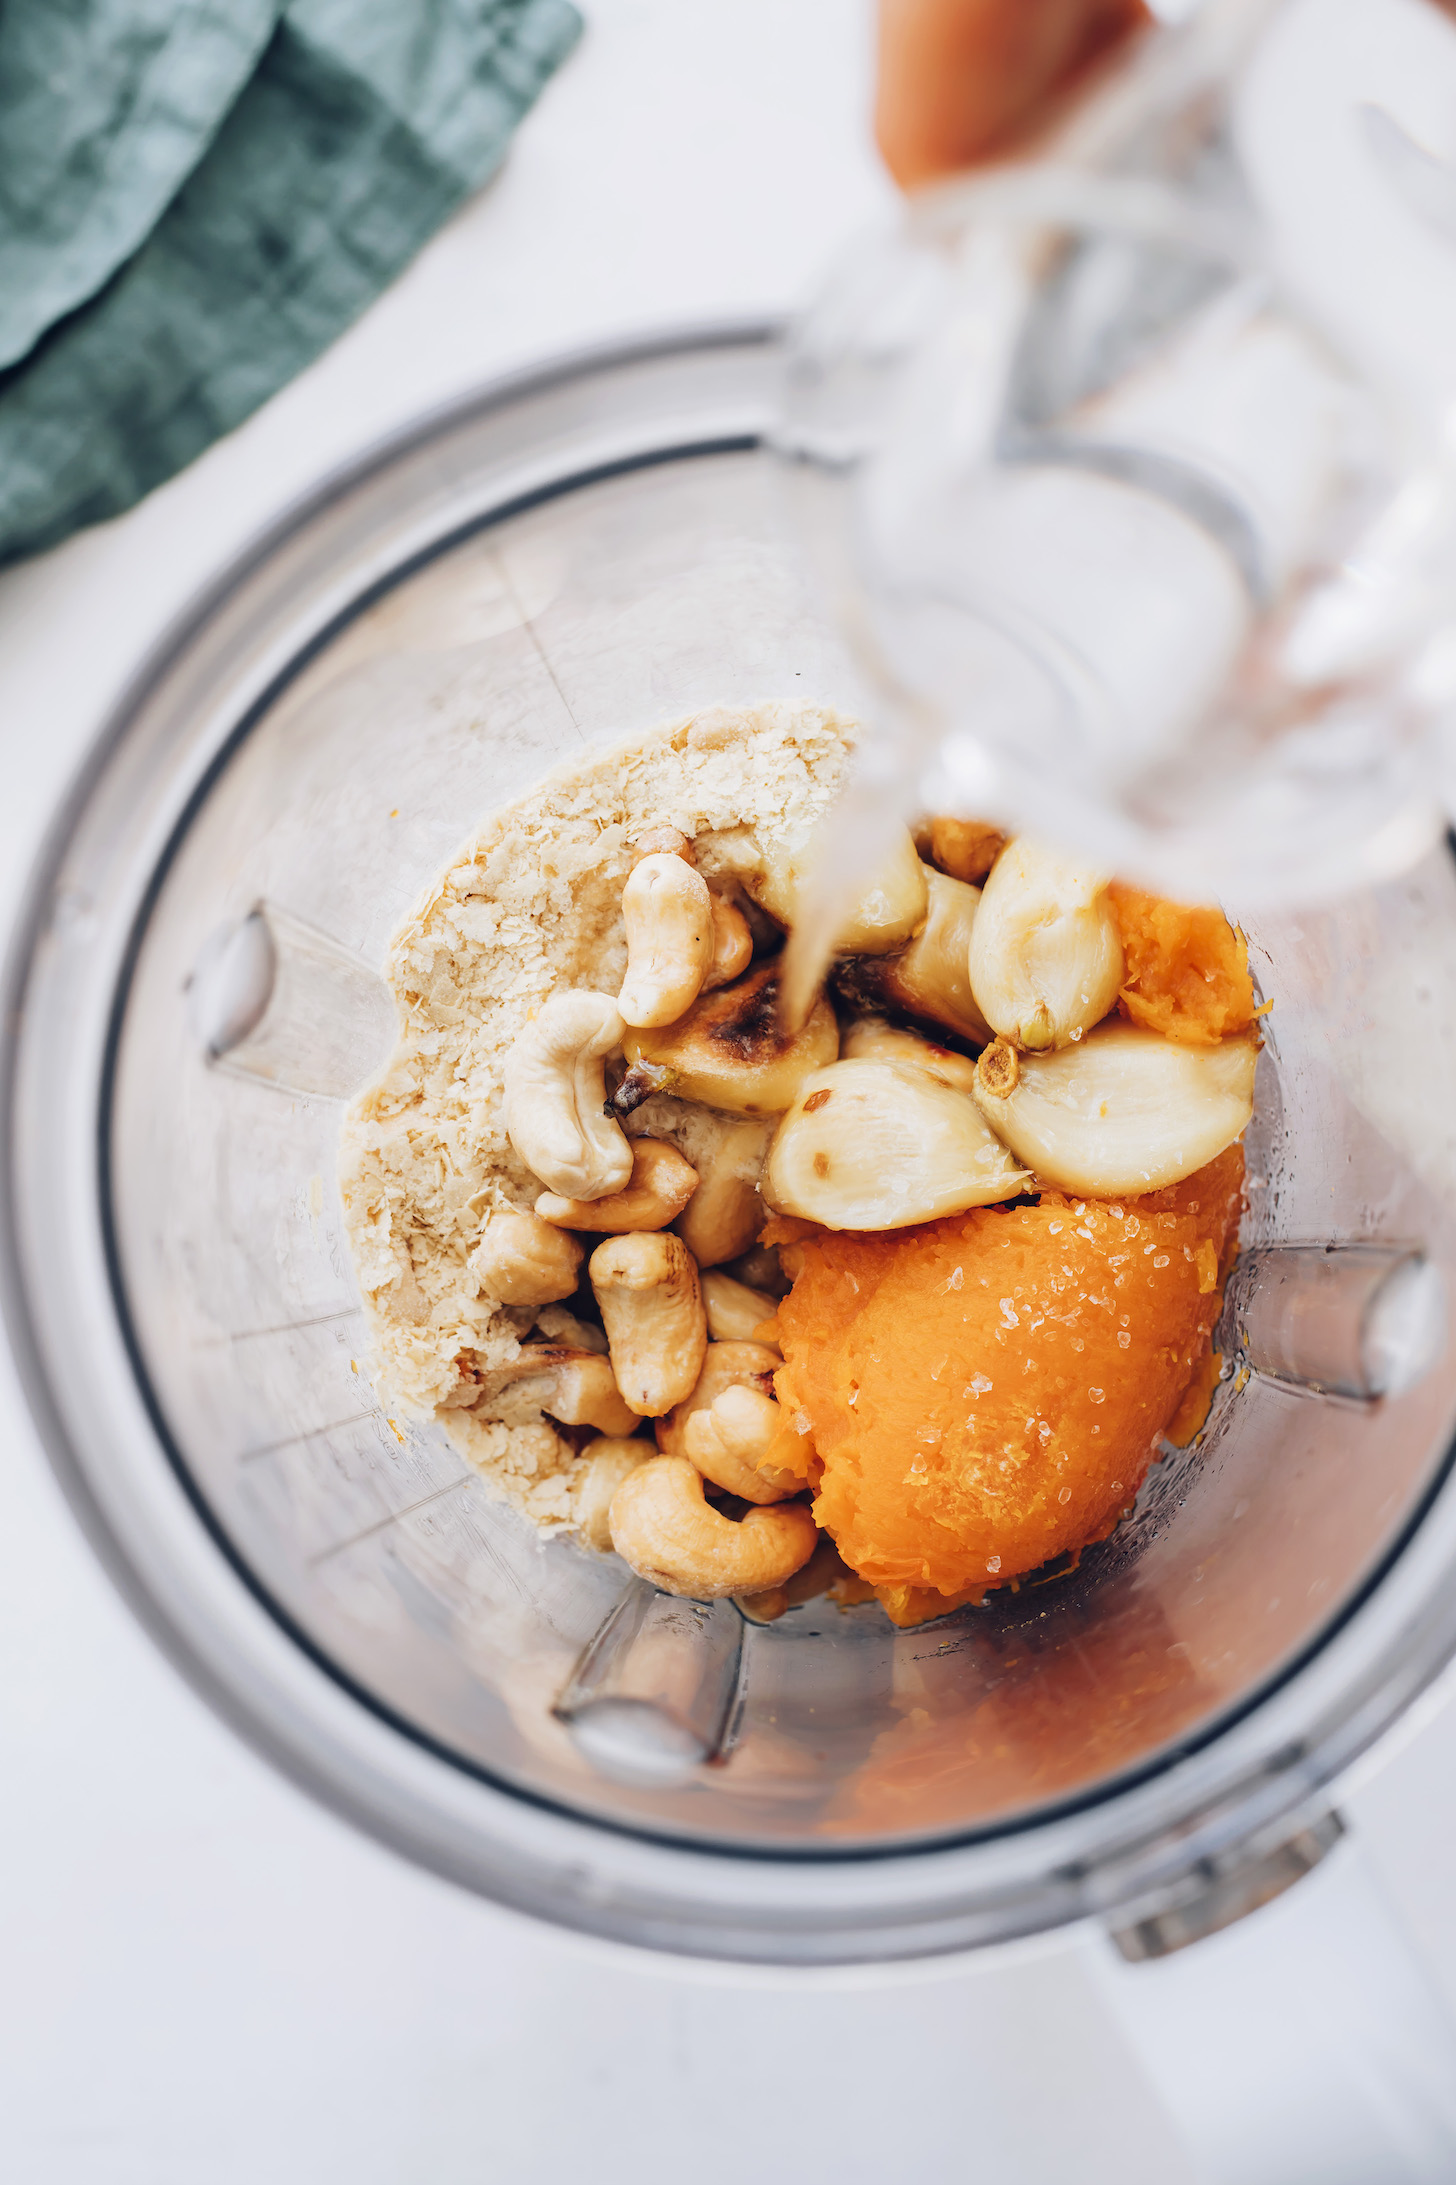 Pouring water into a blender with roasted squash, garlic, cashews, nutritional yeast, and salt